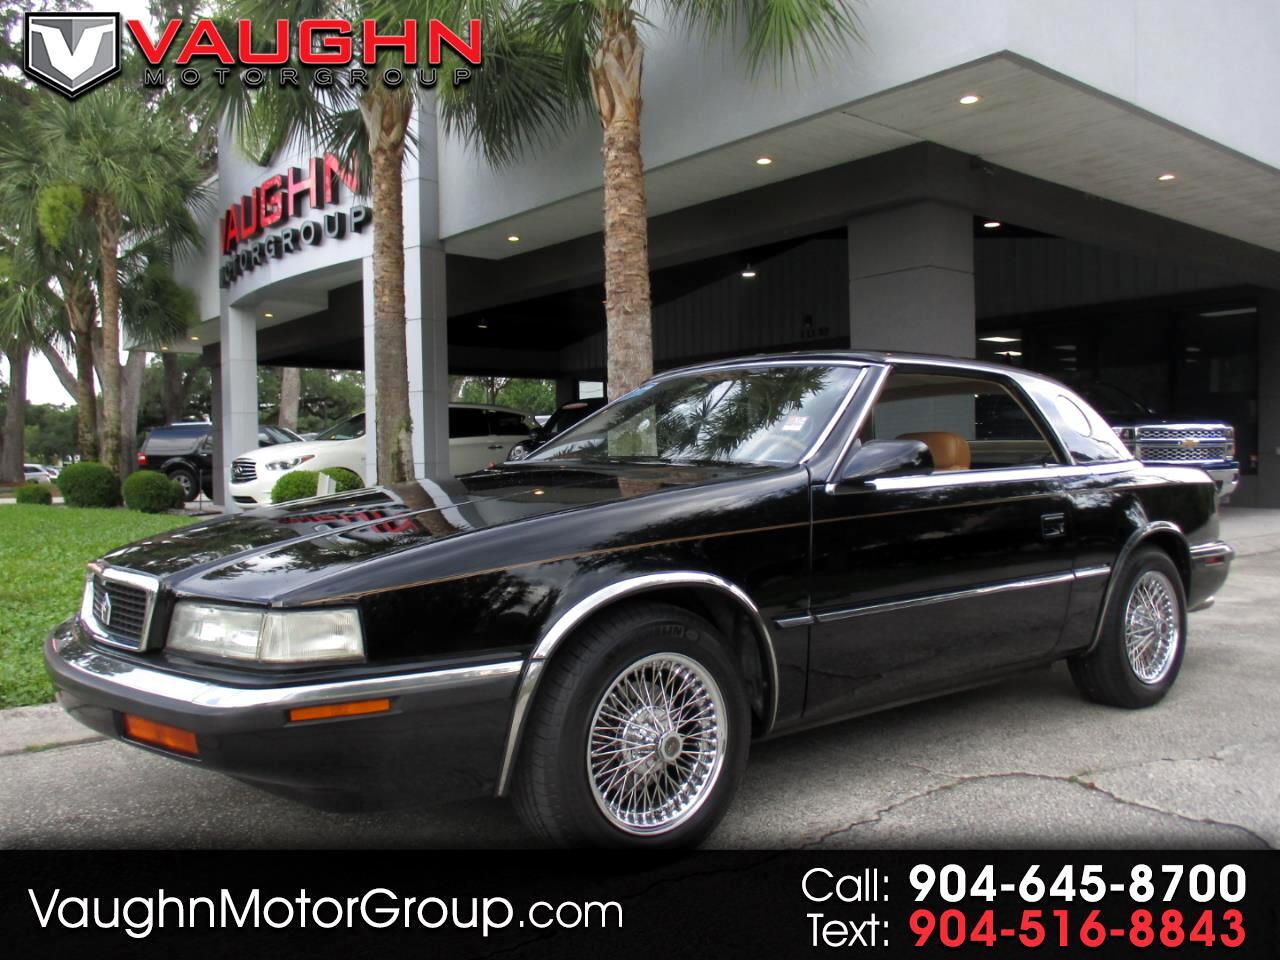 1990 Chrysler LeBaron 2dr Convertible GTC